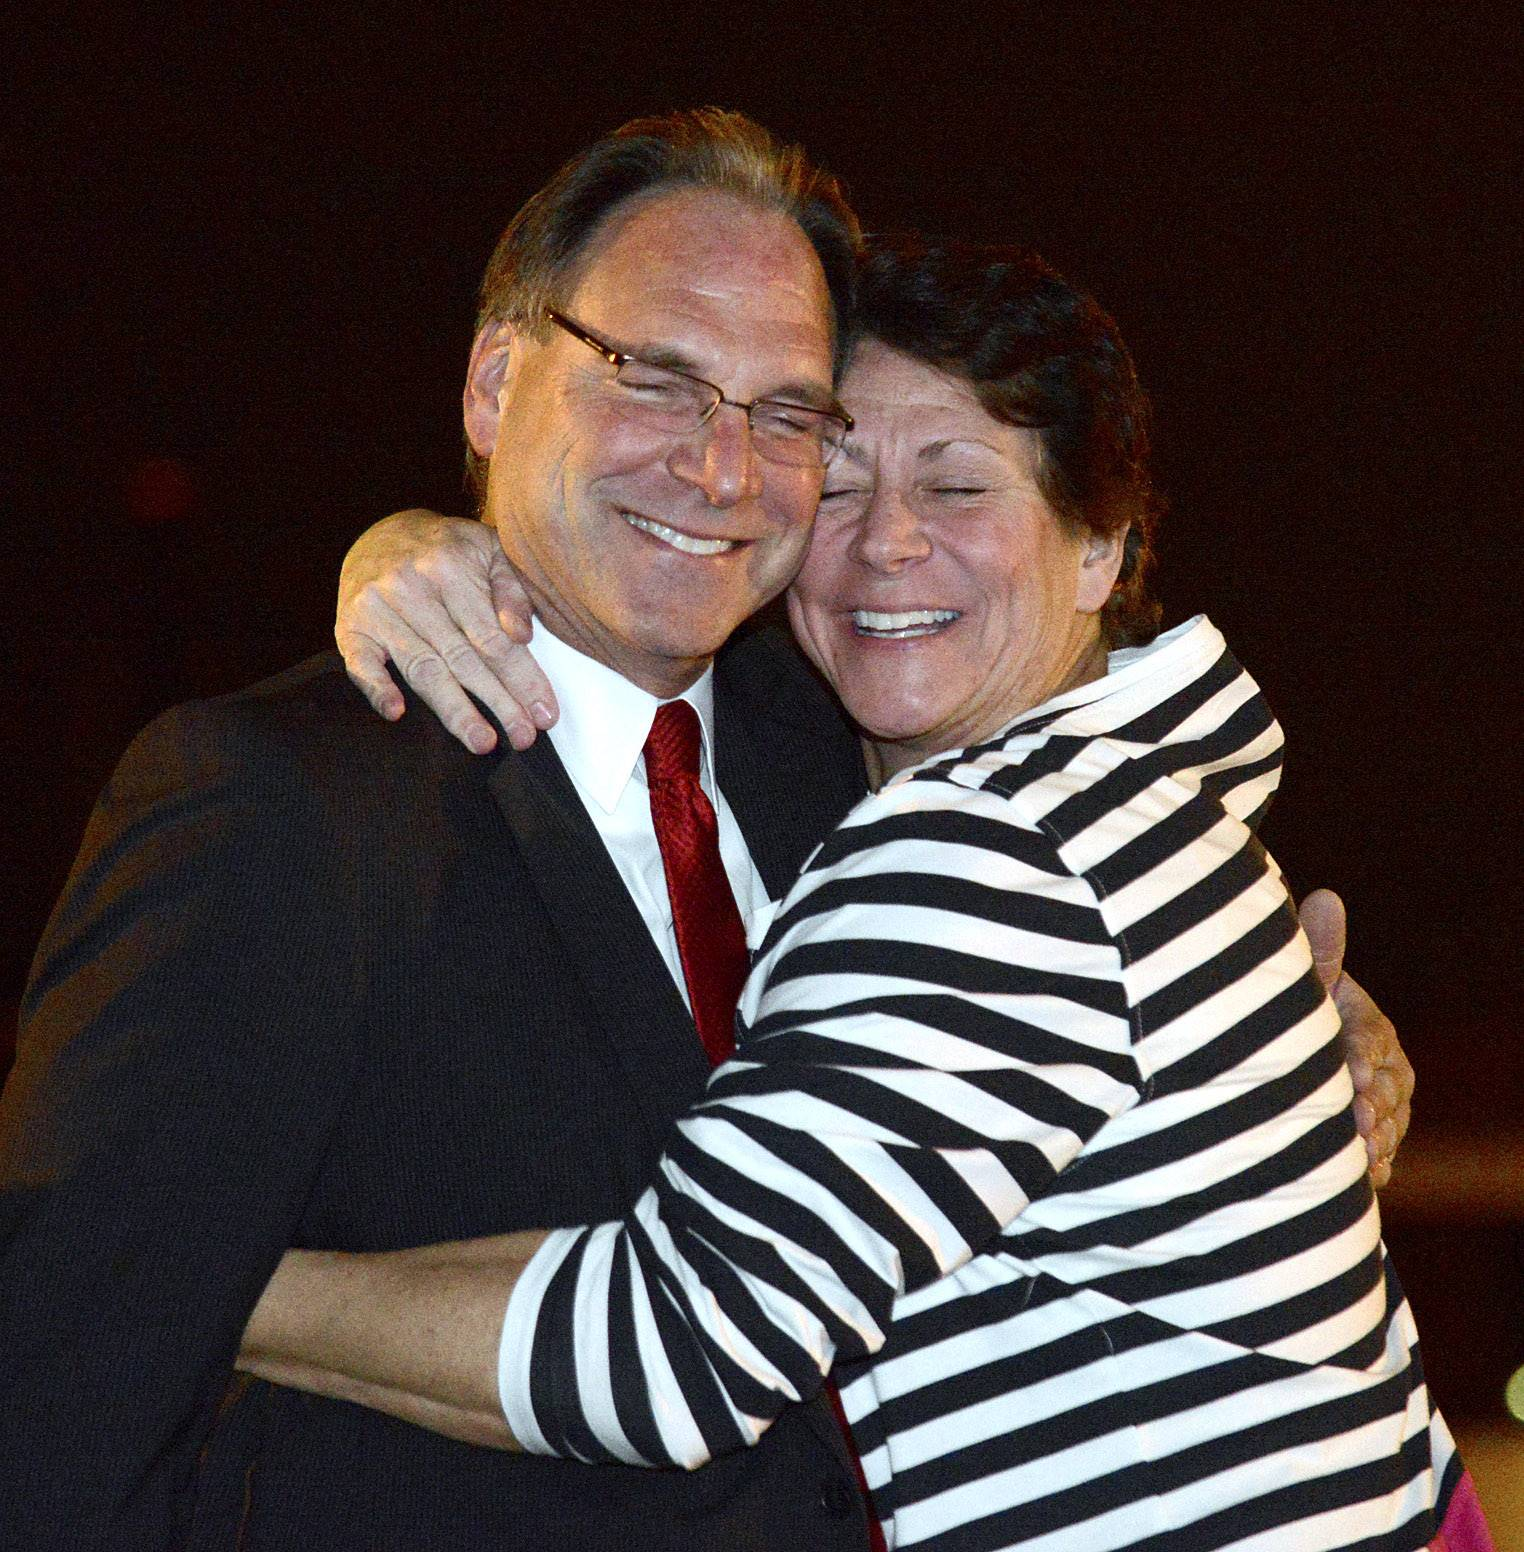 Don Kramer is embraced by his sister, Denise Bumbar, of Batavia, at his Election Night party Tuesday in Geneva. Kramer beat Kevin Williams to earn the GOP nod for Kane County sheriff in the November general election.